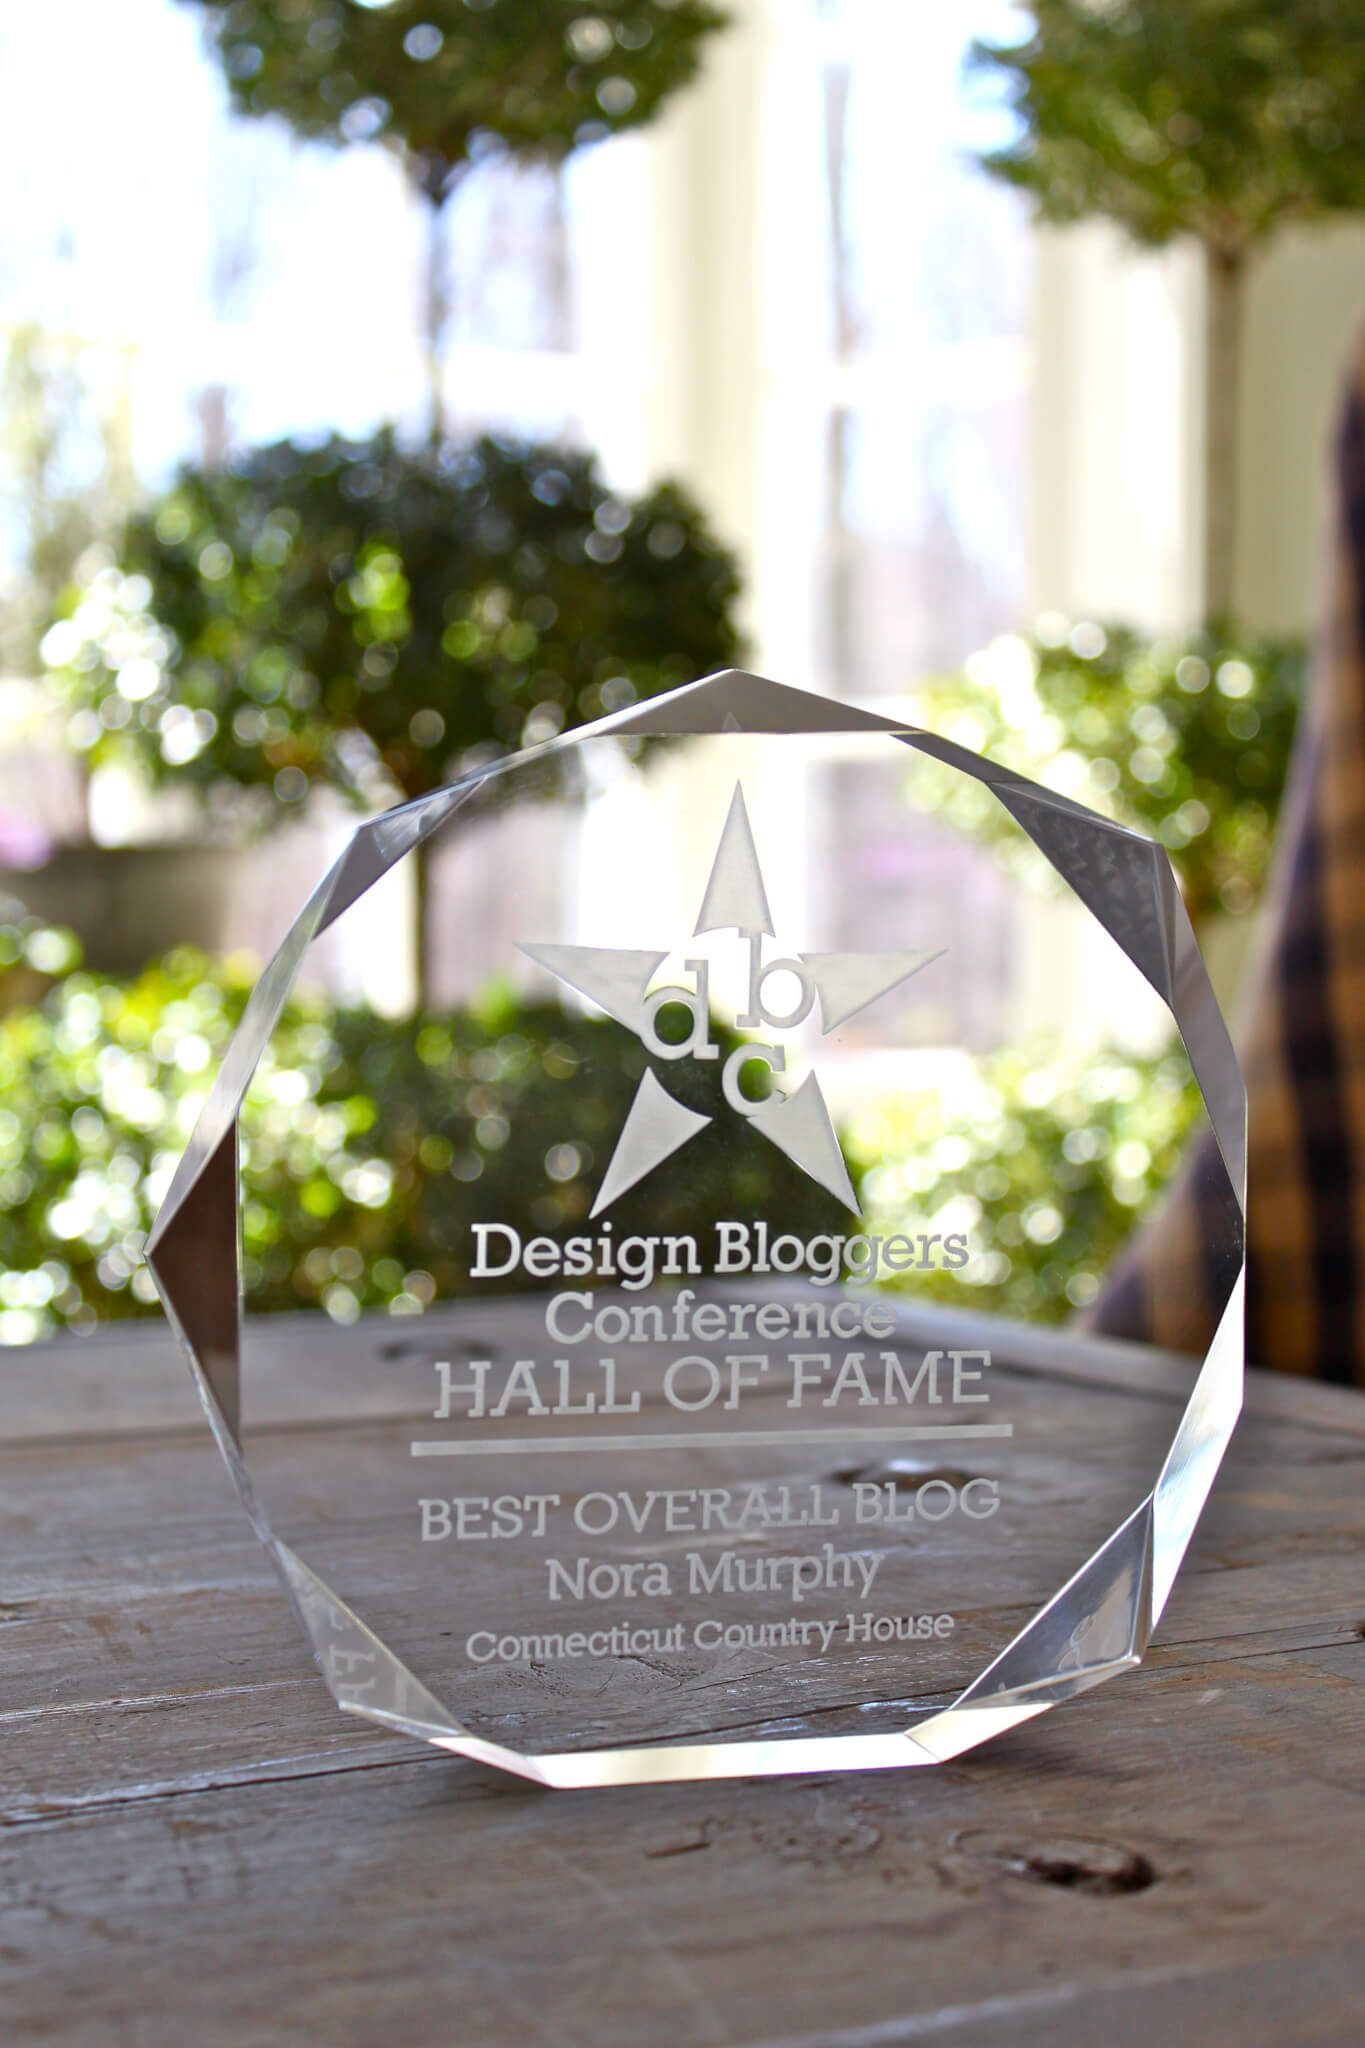 Design Bloggers Conference Hall of Fame Winner 2016